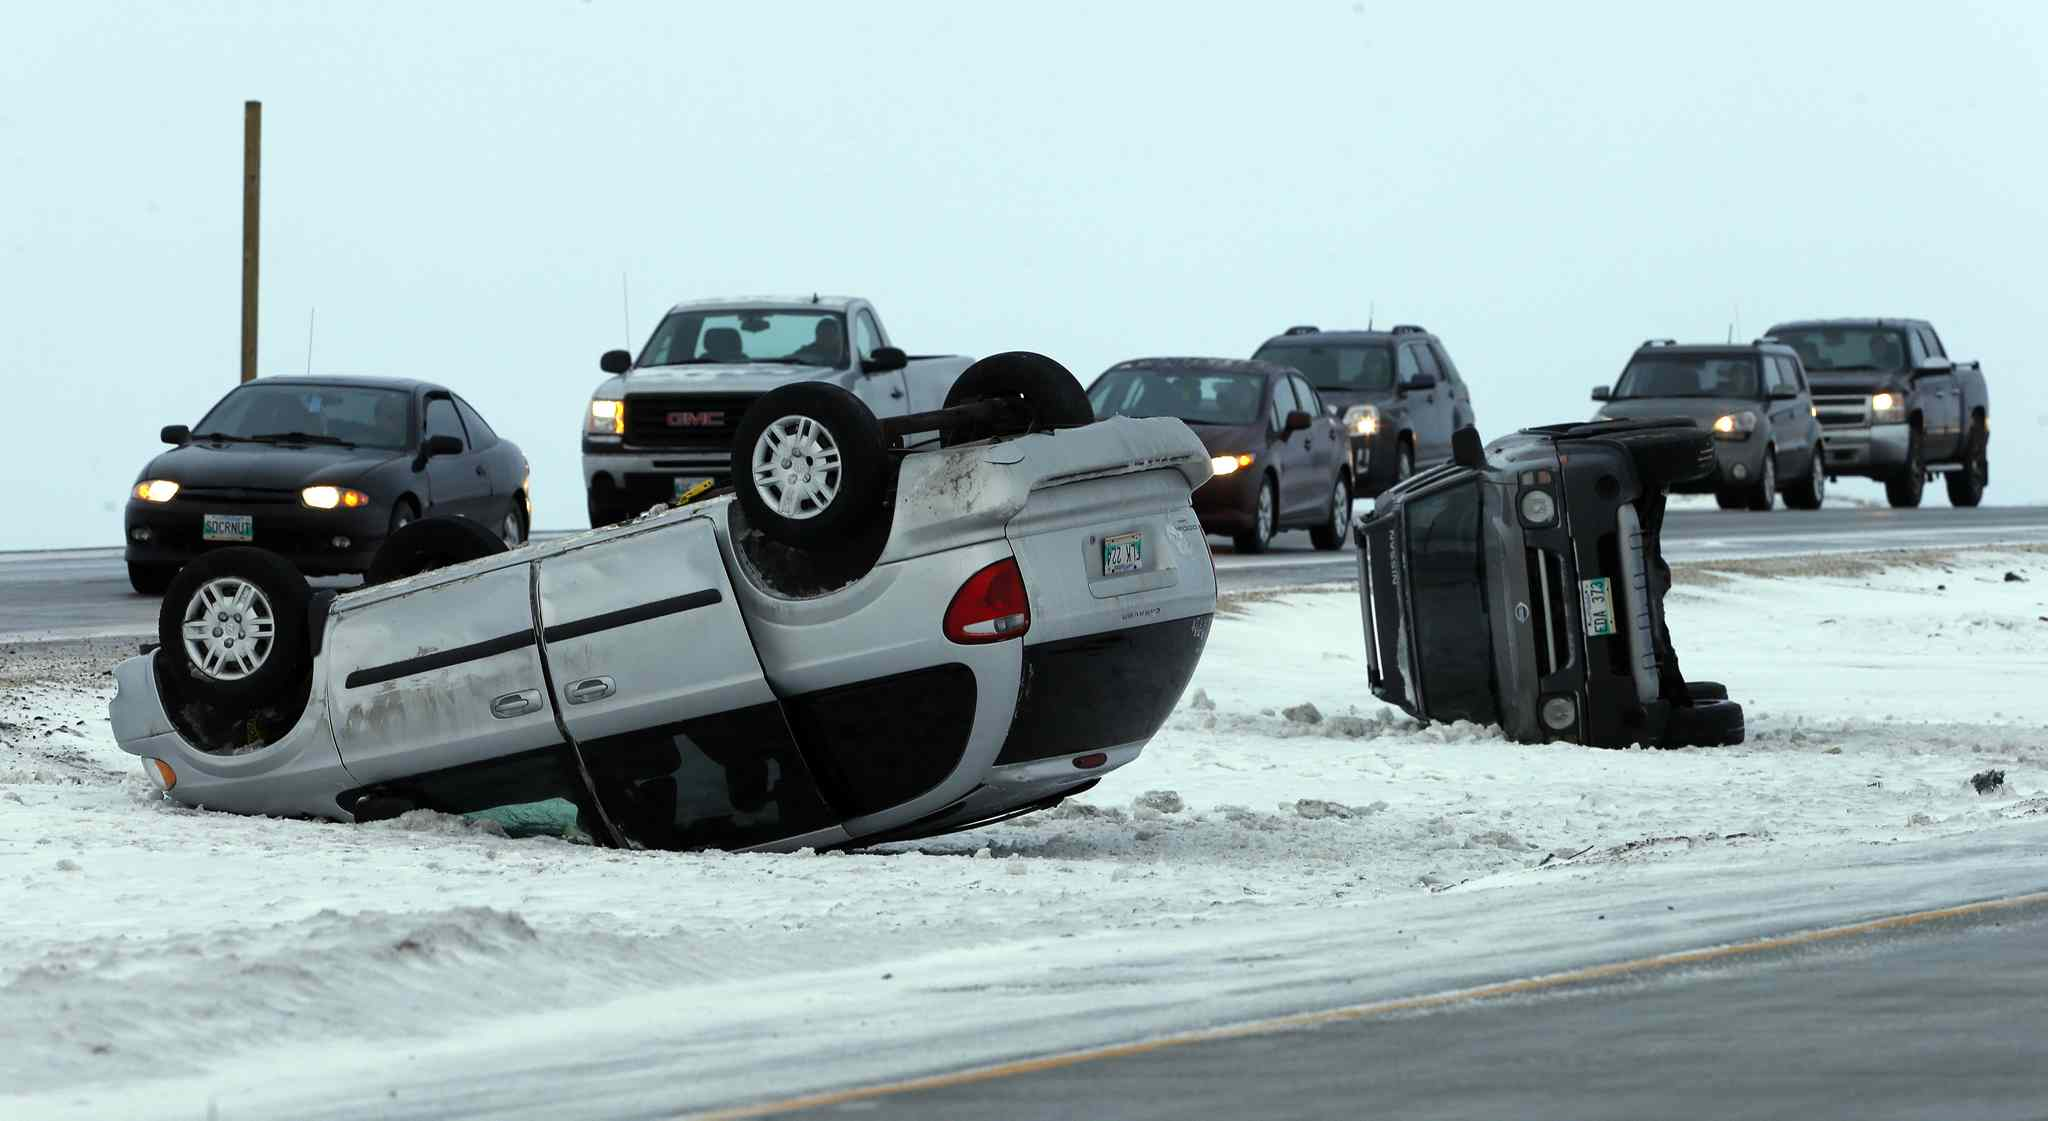 Two cars are seen flipped over and off the road due to glare ice conditions east of Centreport Canada Way.